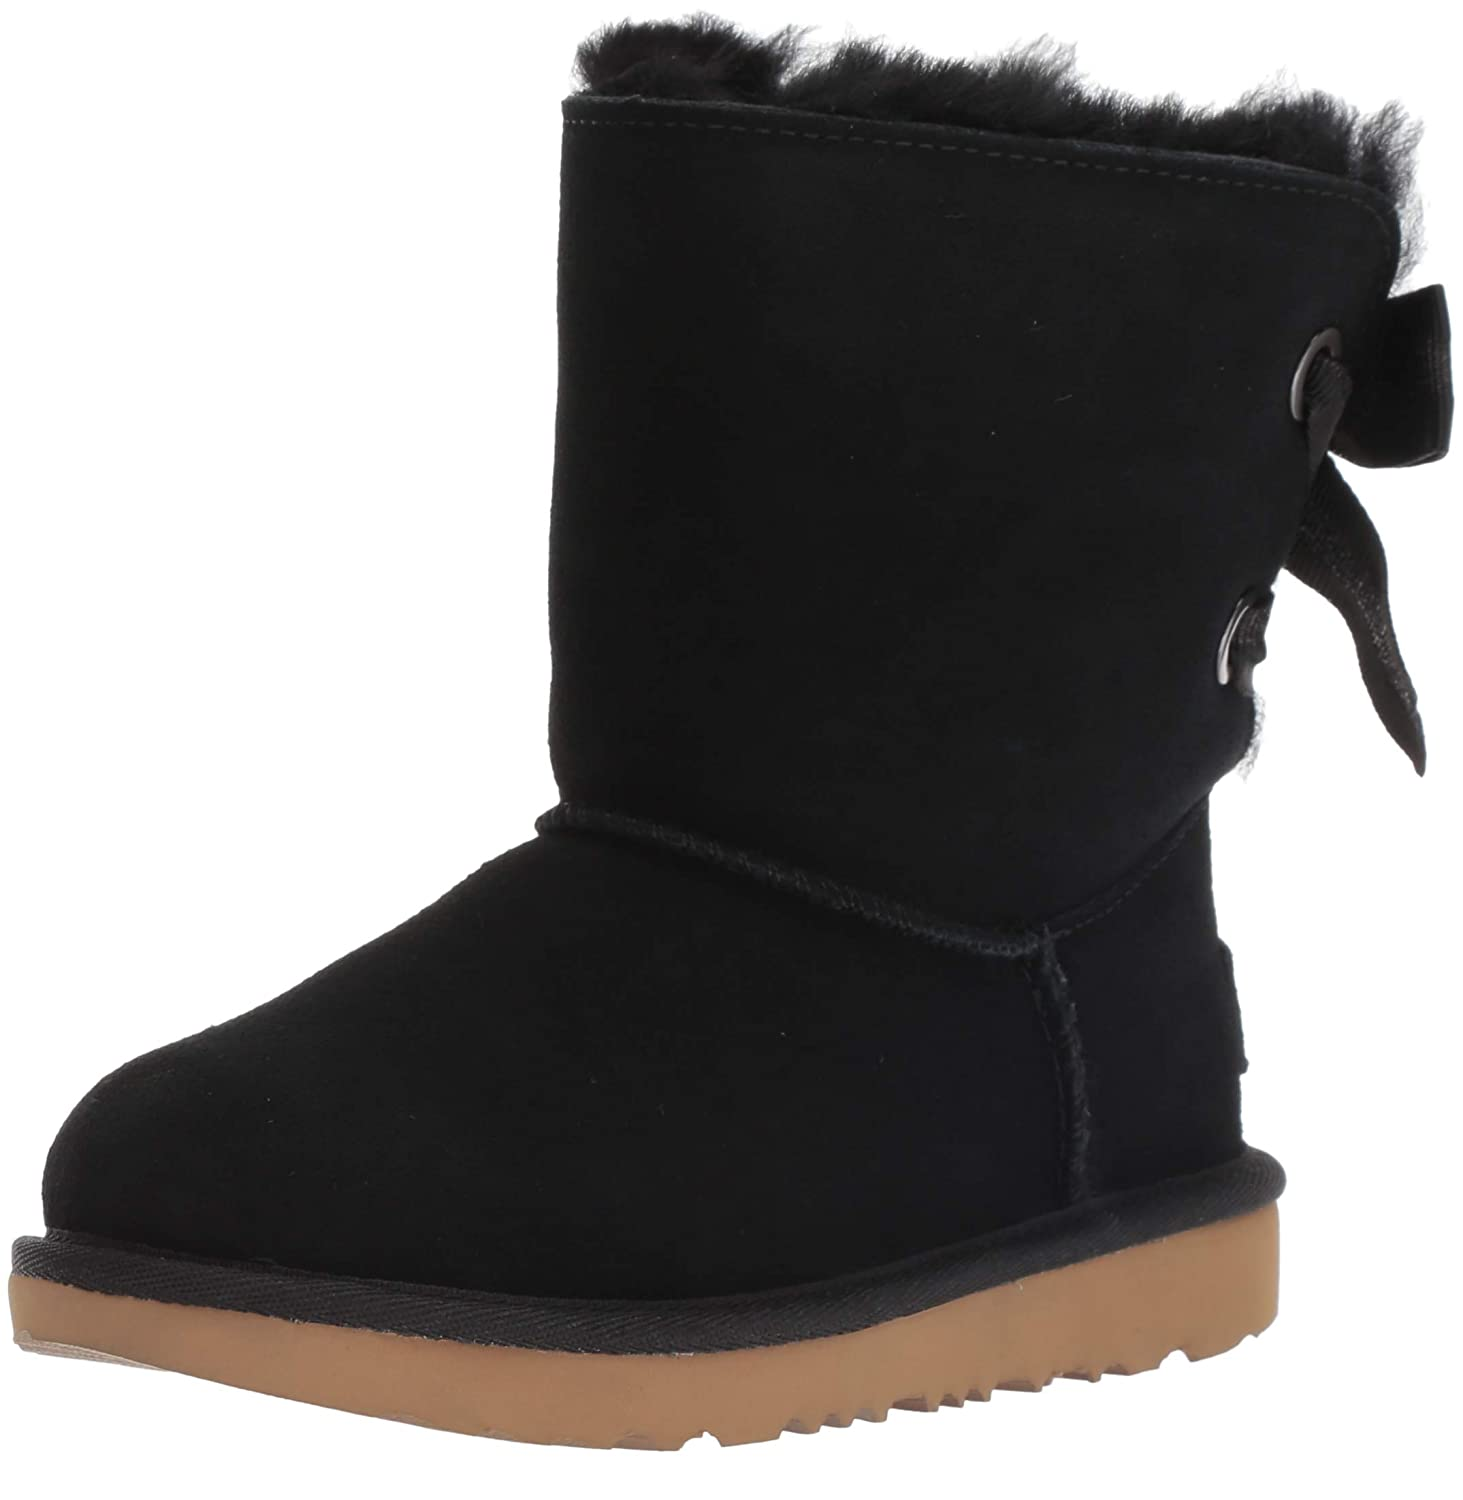 a8a228fd74d UGG Kids' K Customizable Bailey Bow Ii Fashion Boot